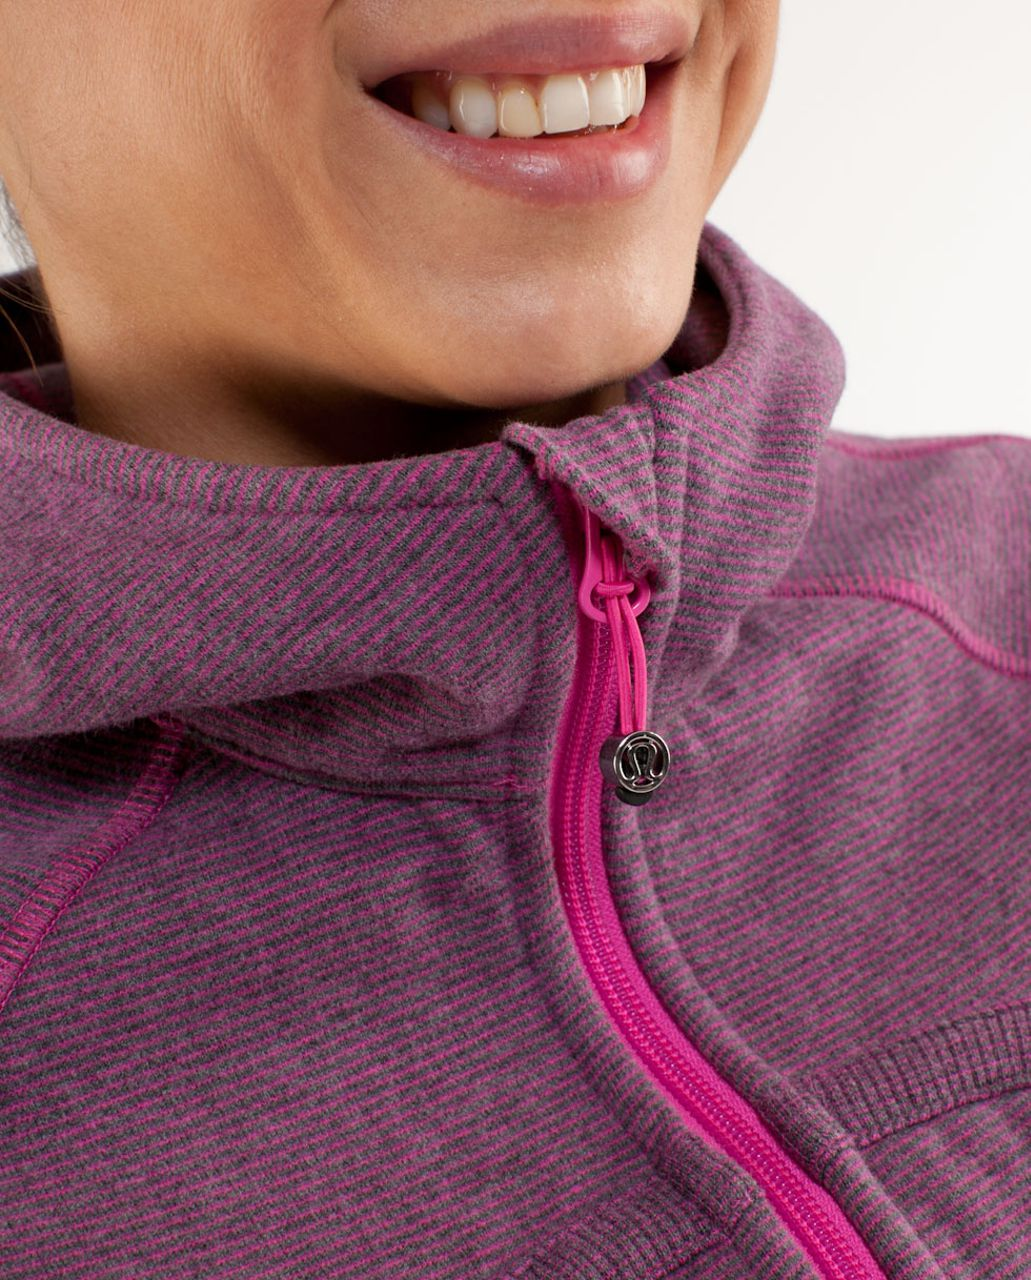 Lululemon Scuba Hoodie *Stripe - Heathered Blurred Grey Paris Pink Microstripe /  Paris Pink